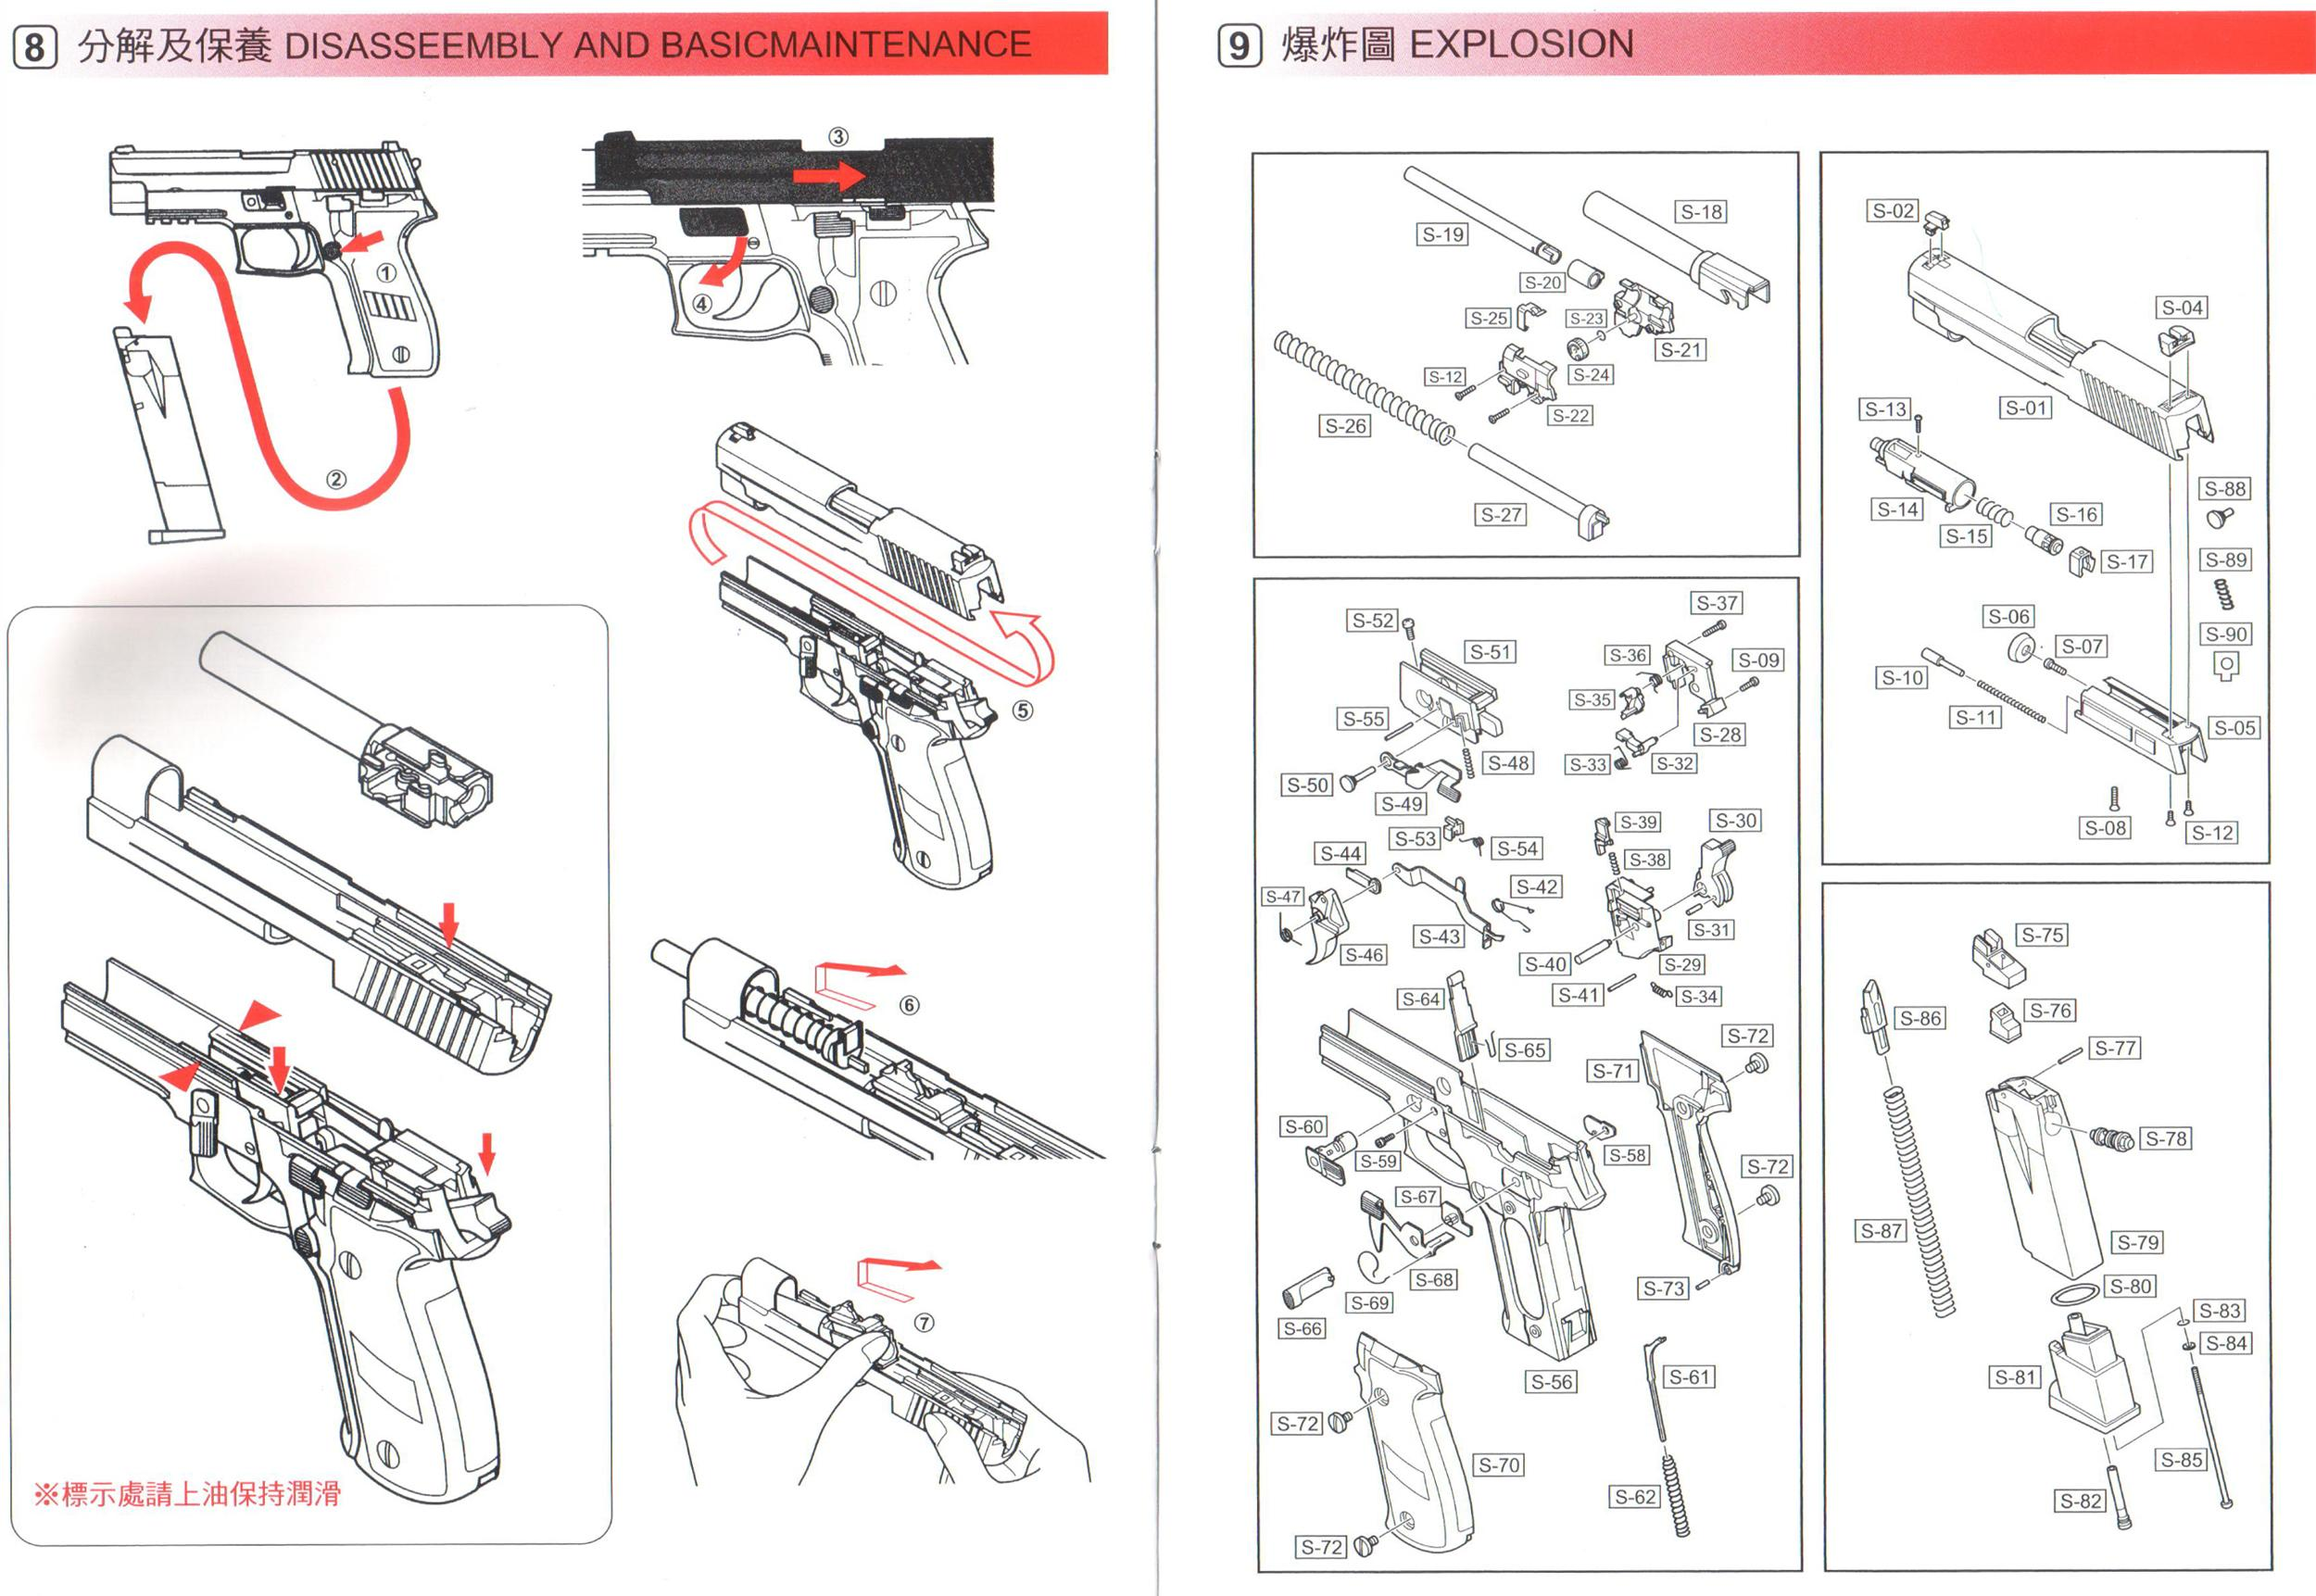 sig p226 diagram   16 wiring diagram images